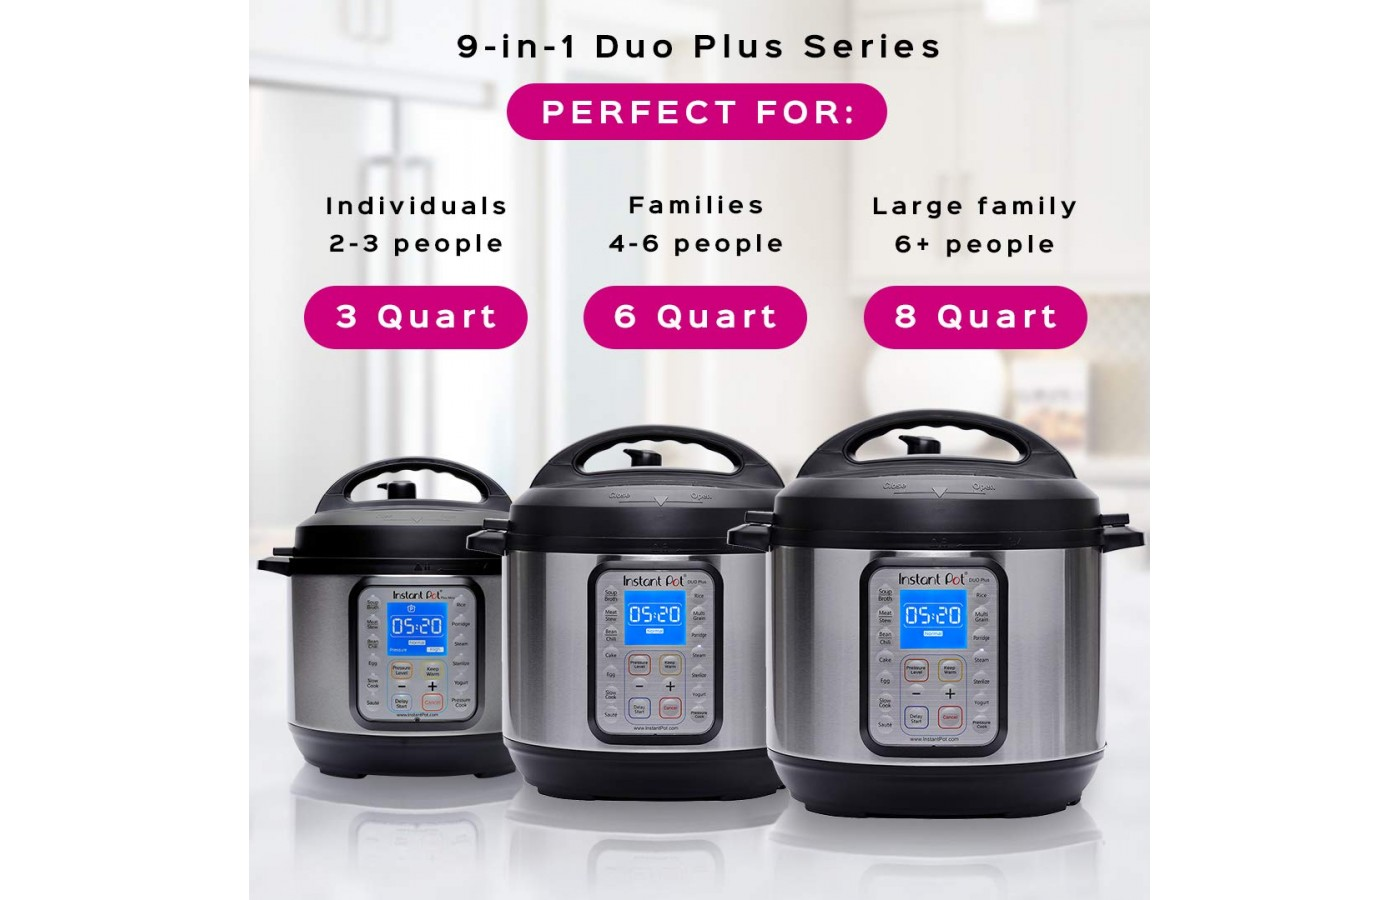 The Duo Plus does have a 3-, 6-, and 8-quart size.